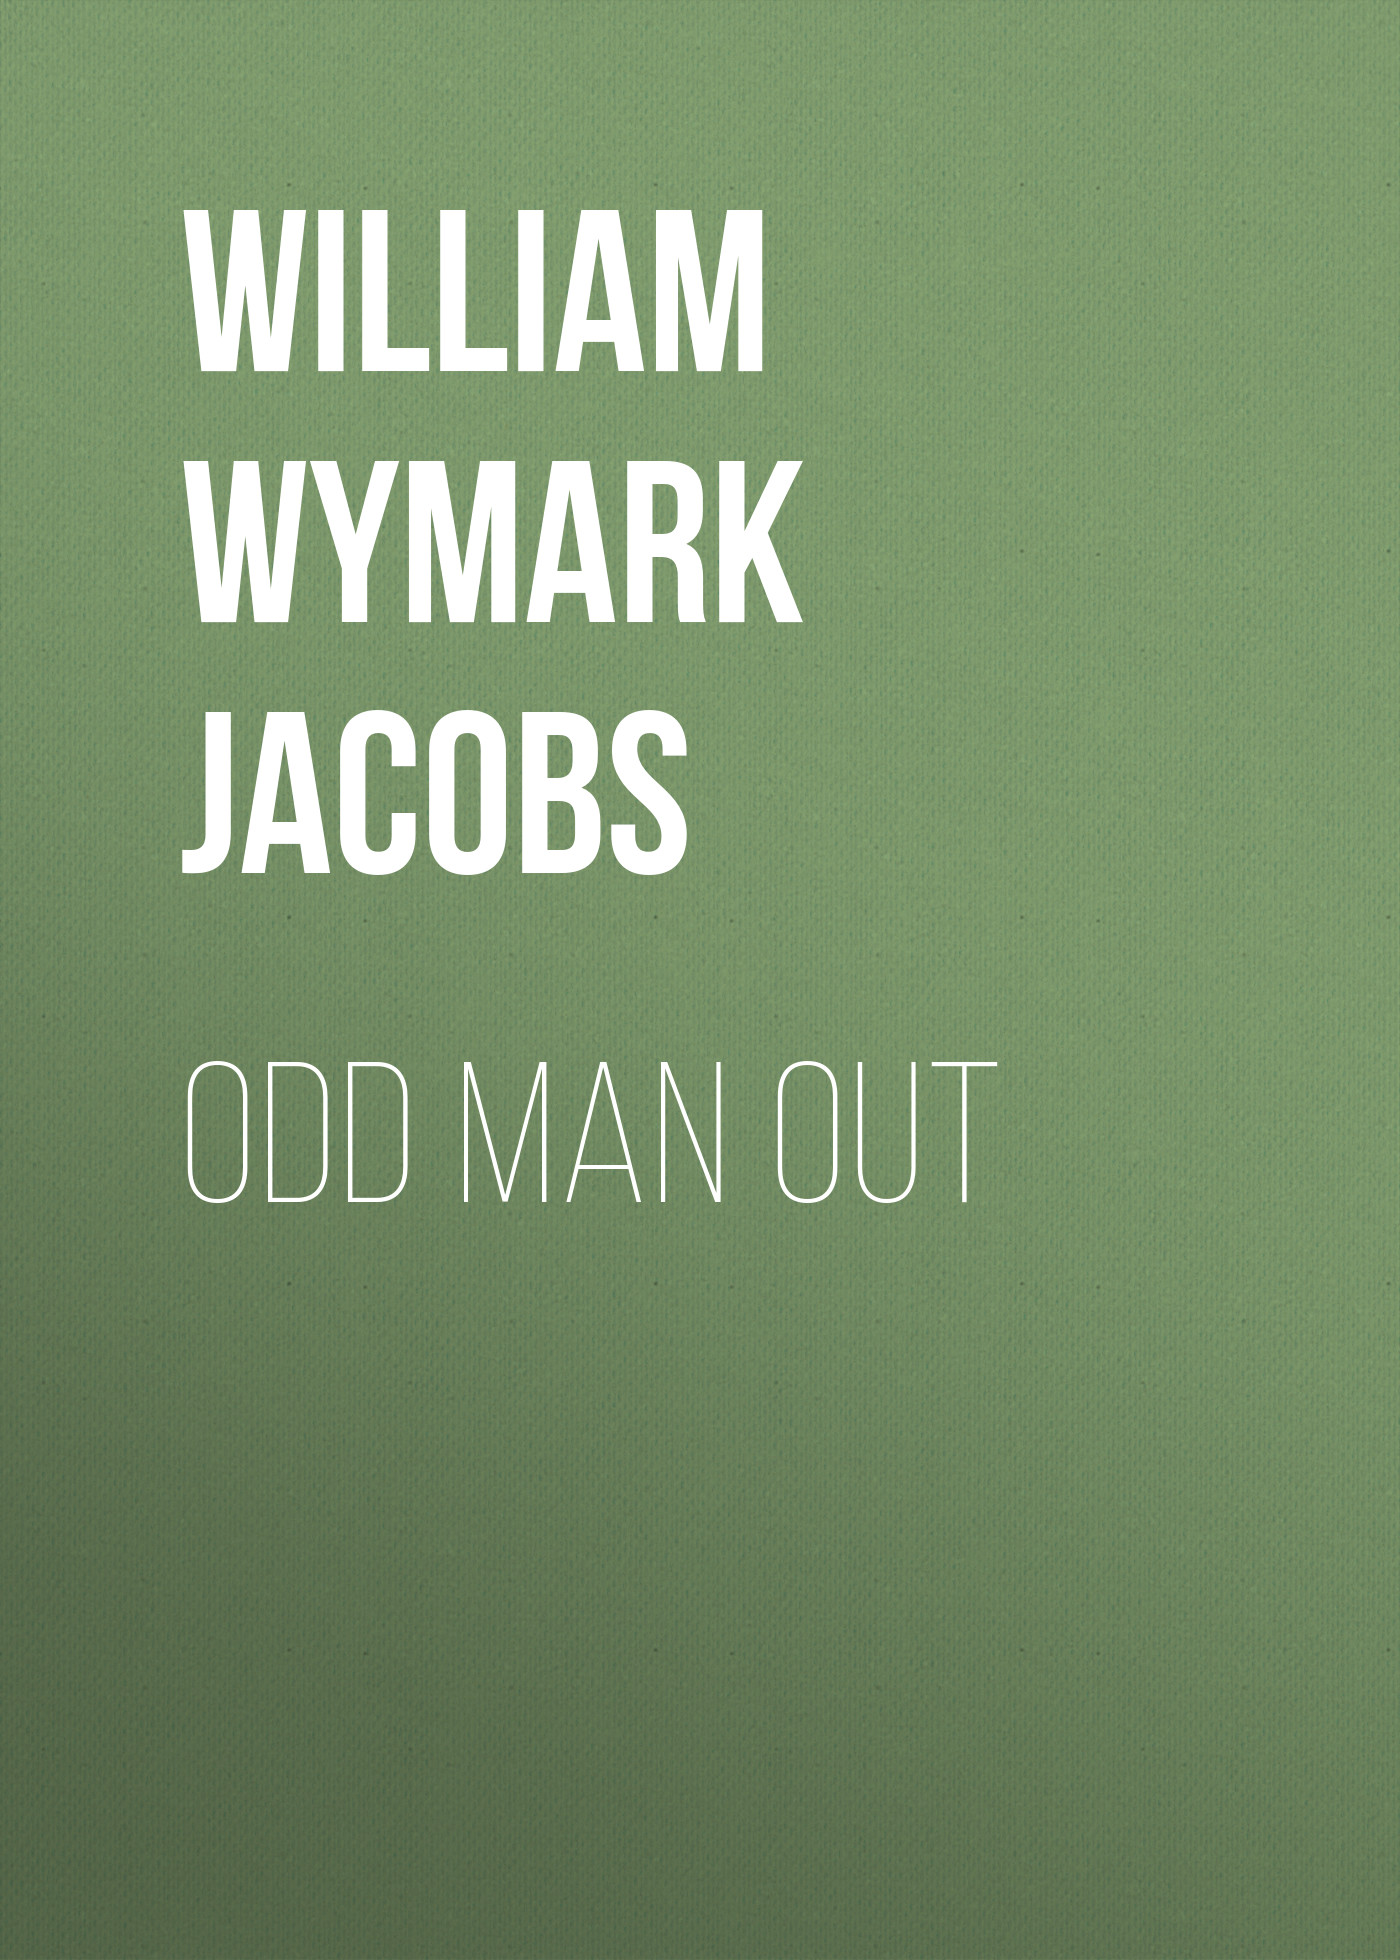 William Wymark Jacobs Odd Man Out